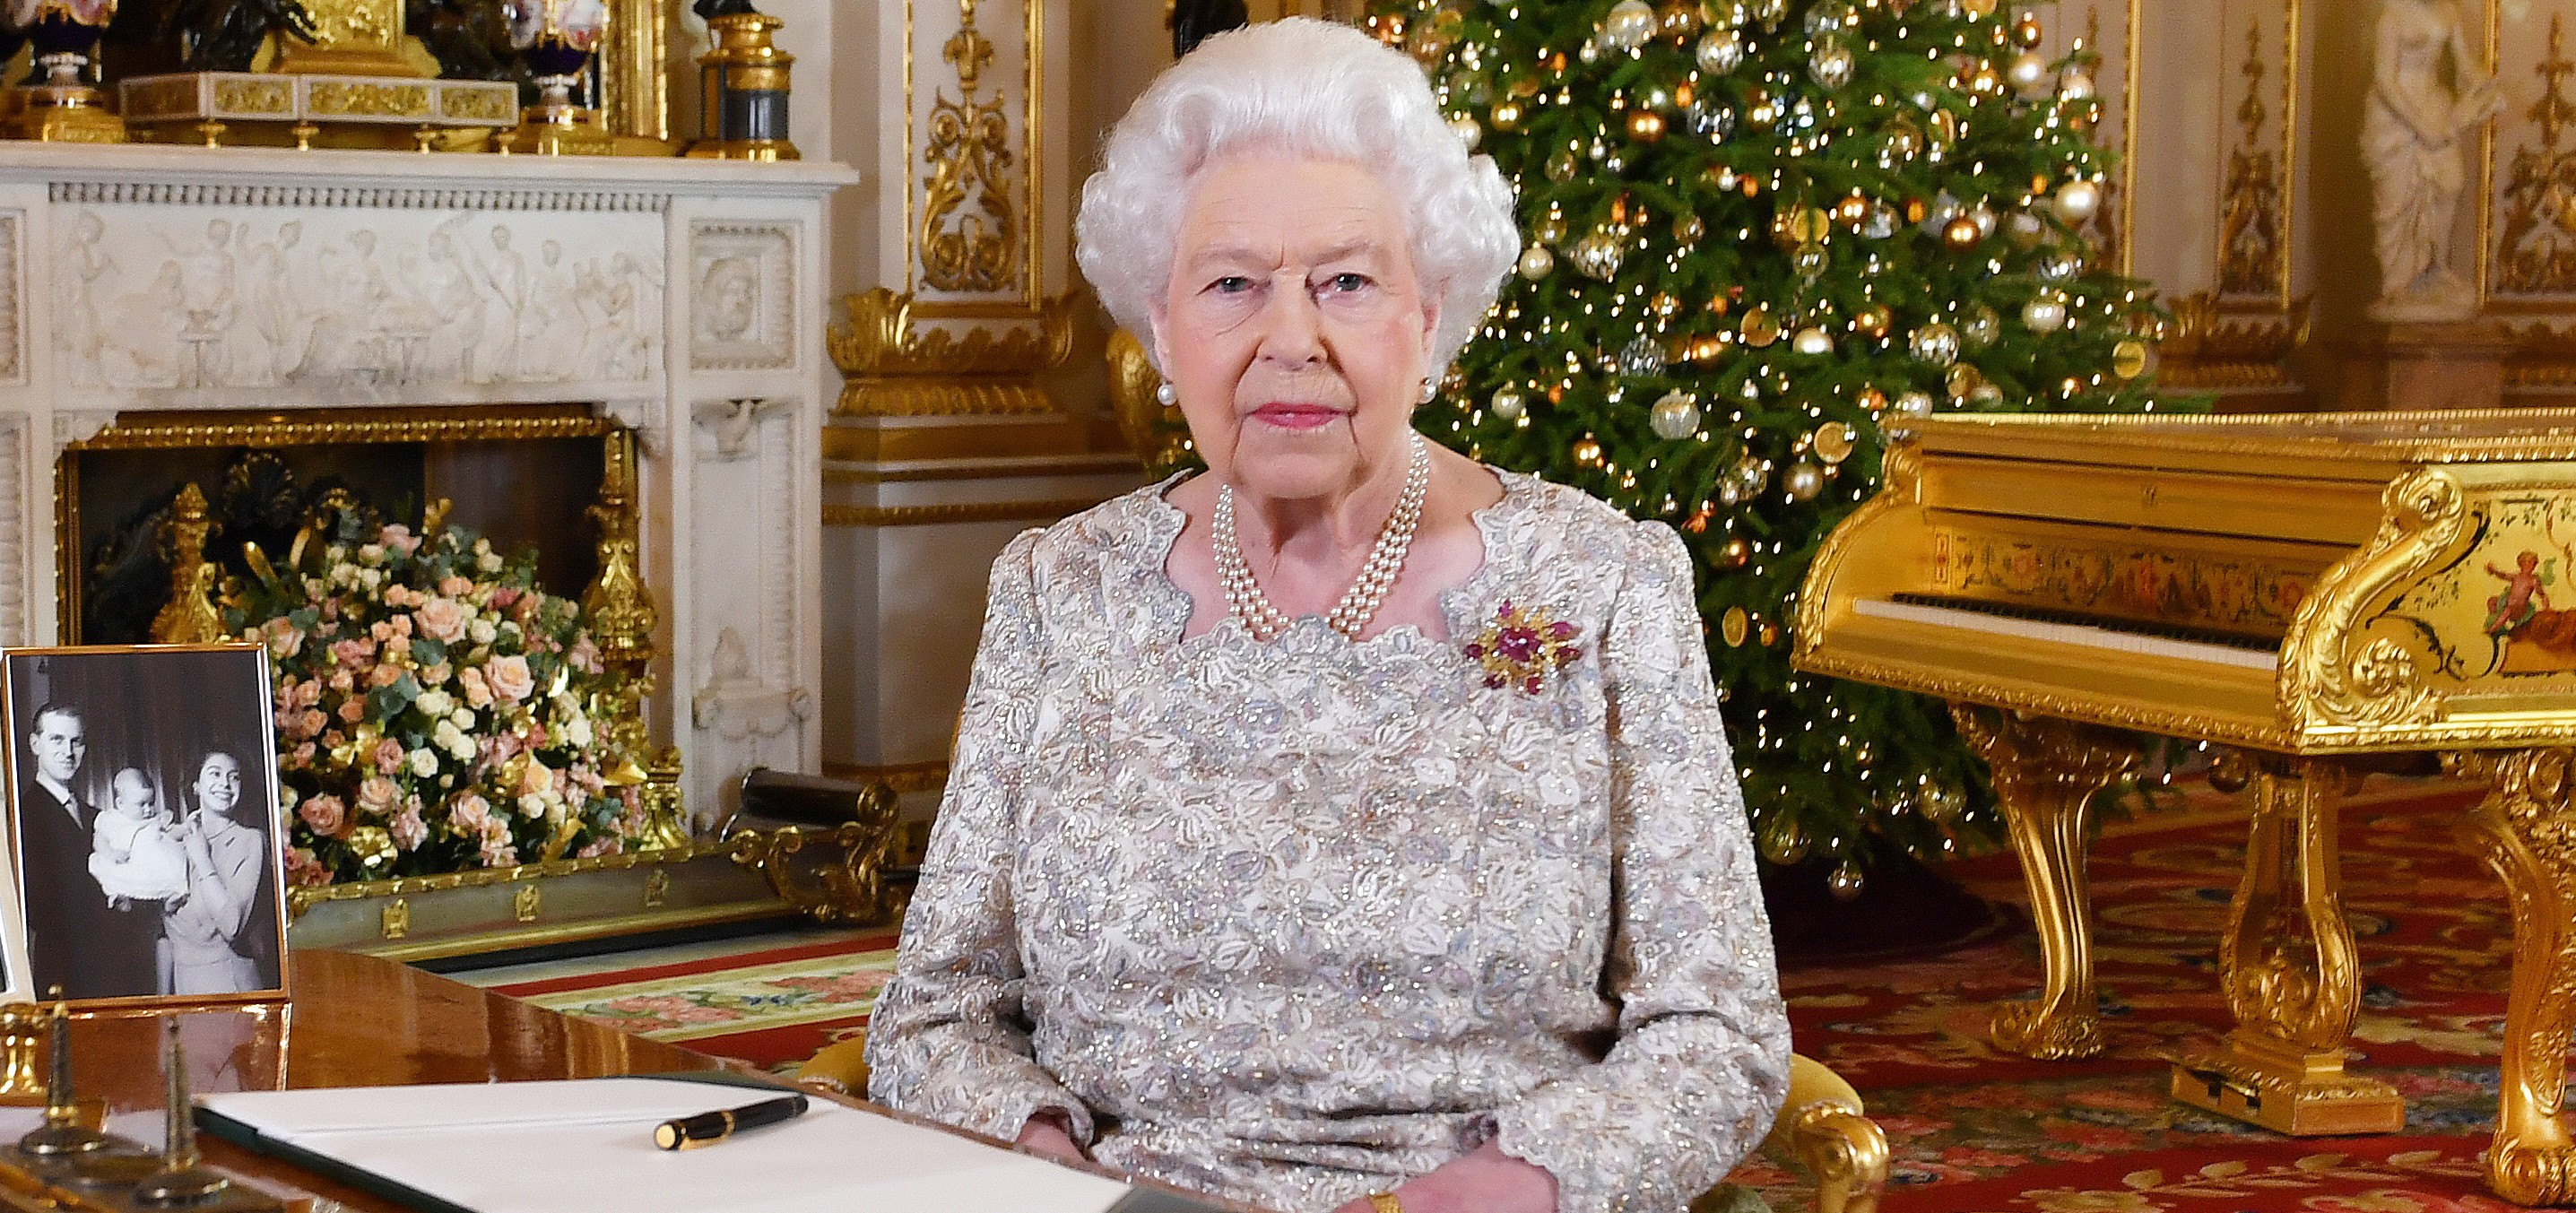 Queen Elizabeth II Delivers Her Christmas Speech